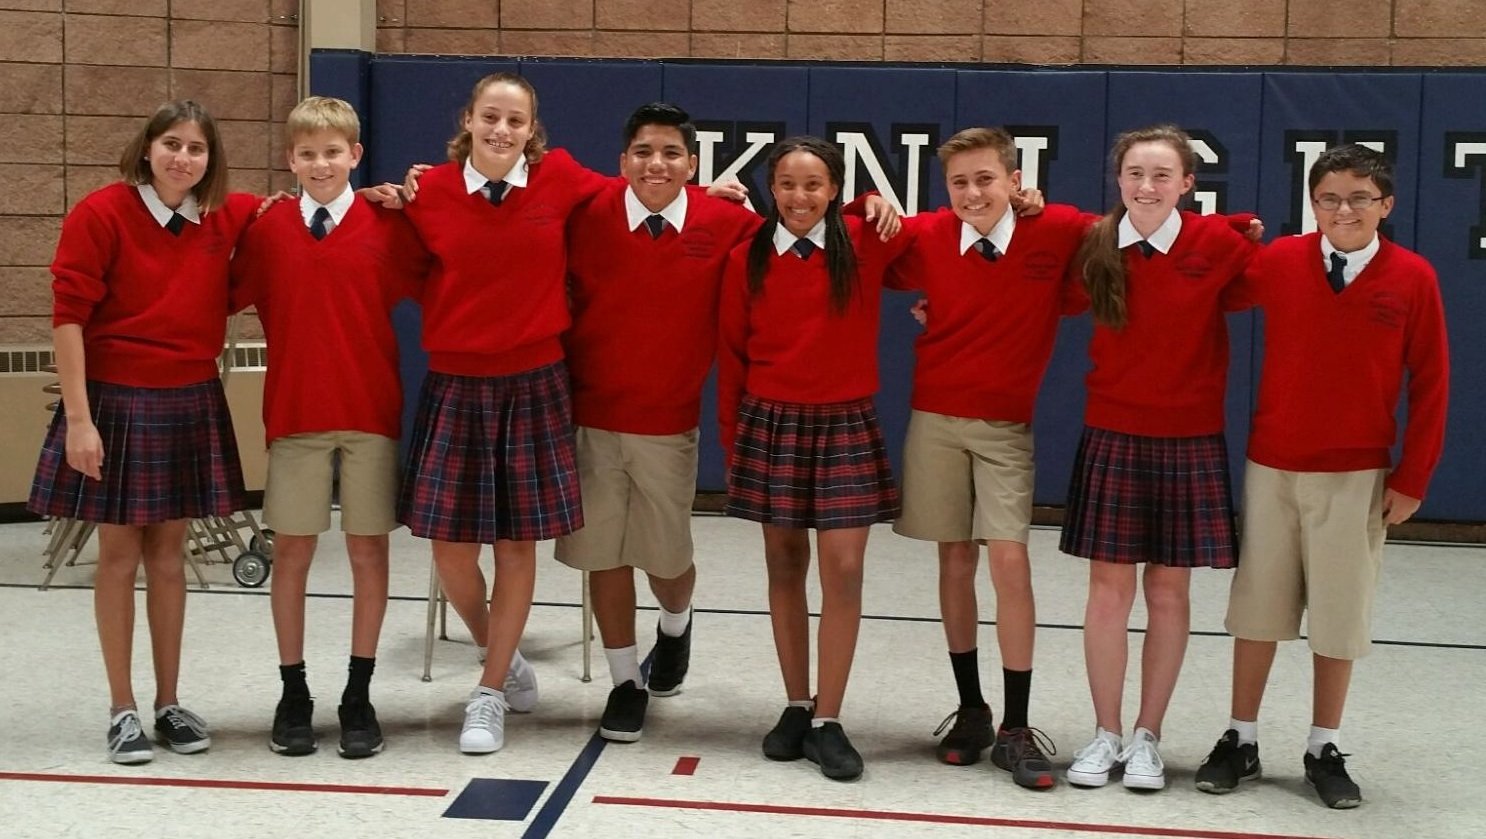 Student Council - leadership- Resurrection School - Sunnyvale